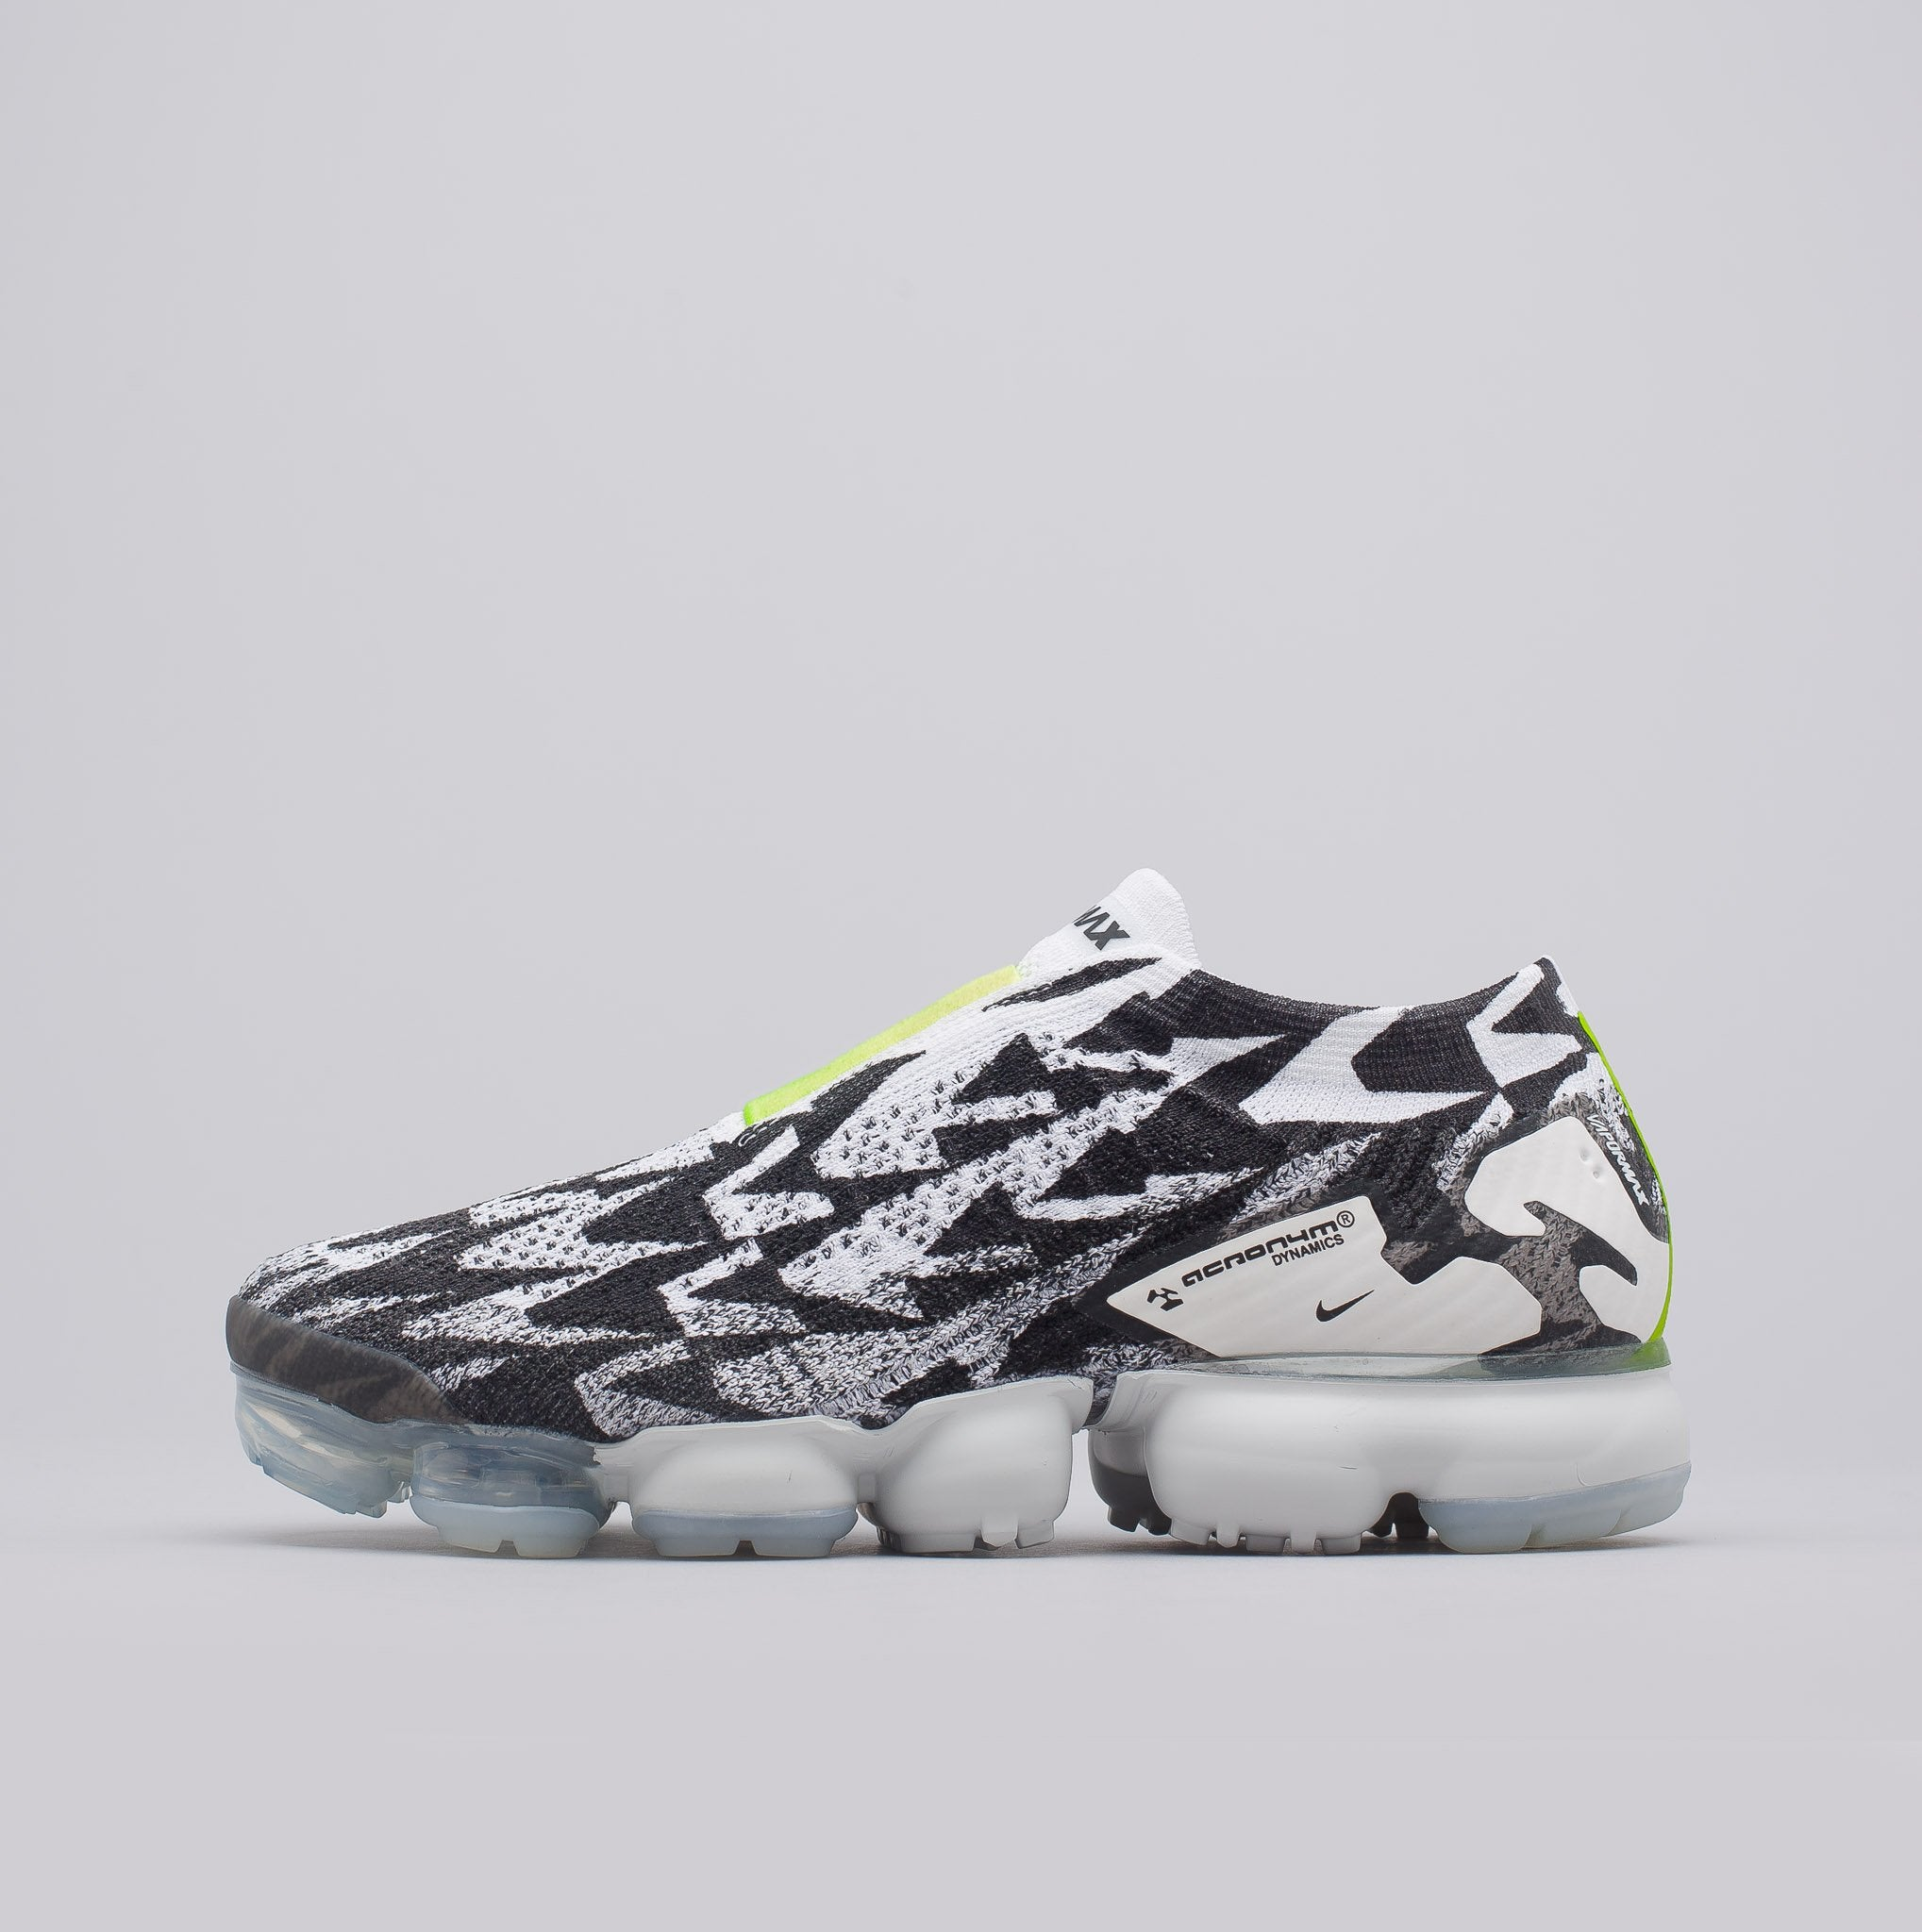 427b9362d01d Acronym Air Vapormax FK Moc 2 in Light Bone Volt Green – PZOZO